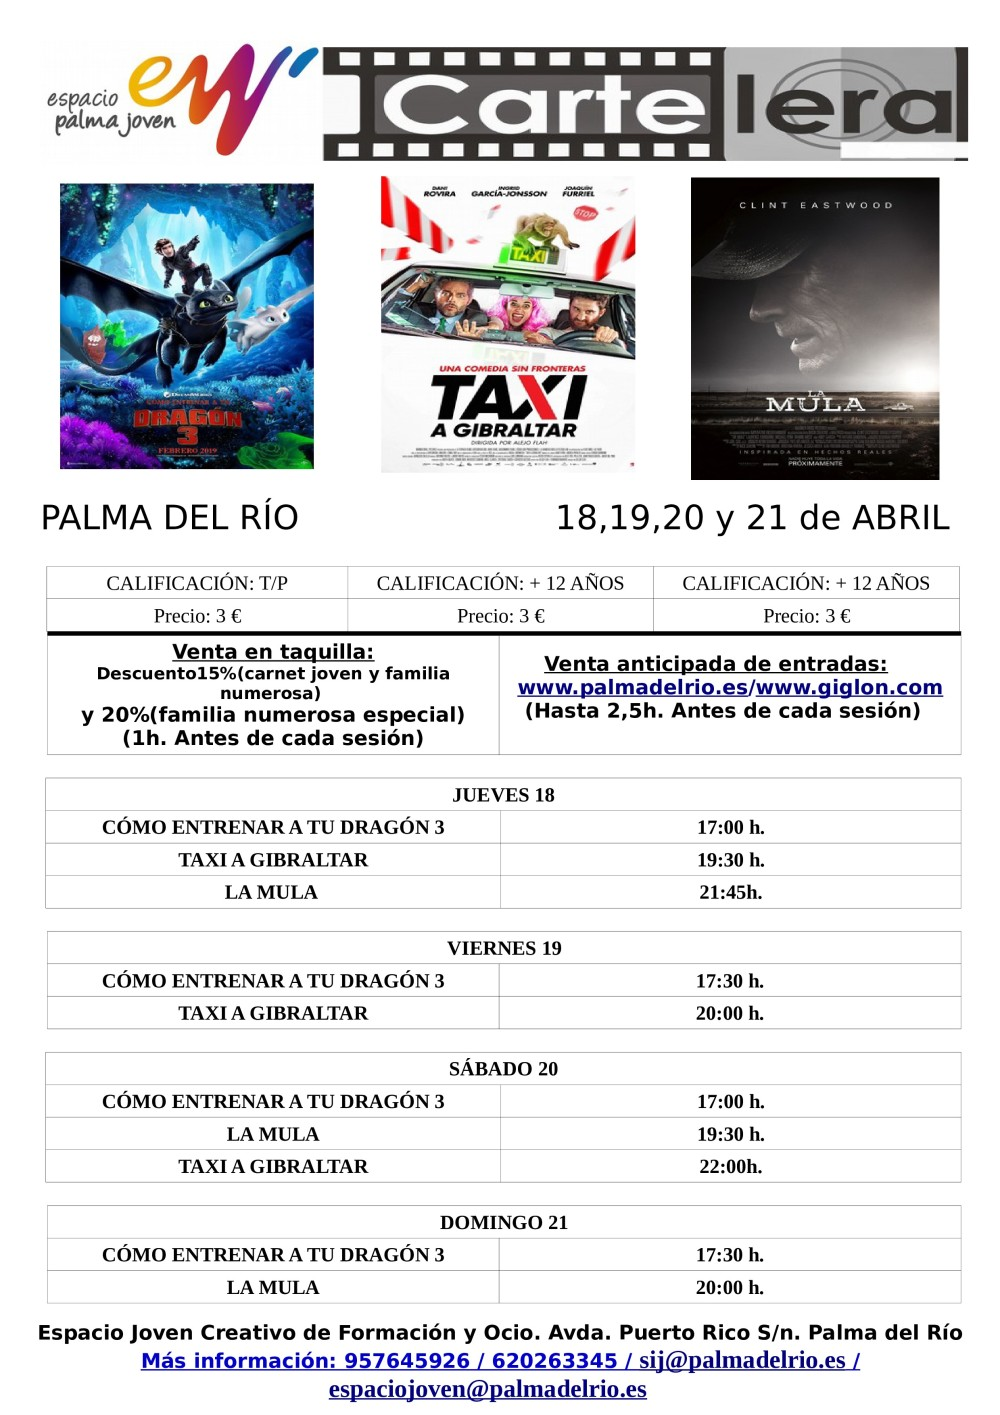 https://www.palmadelrio.es/sites/default/files/cine_18_19_20_y_21_de_abril.jpg